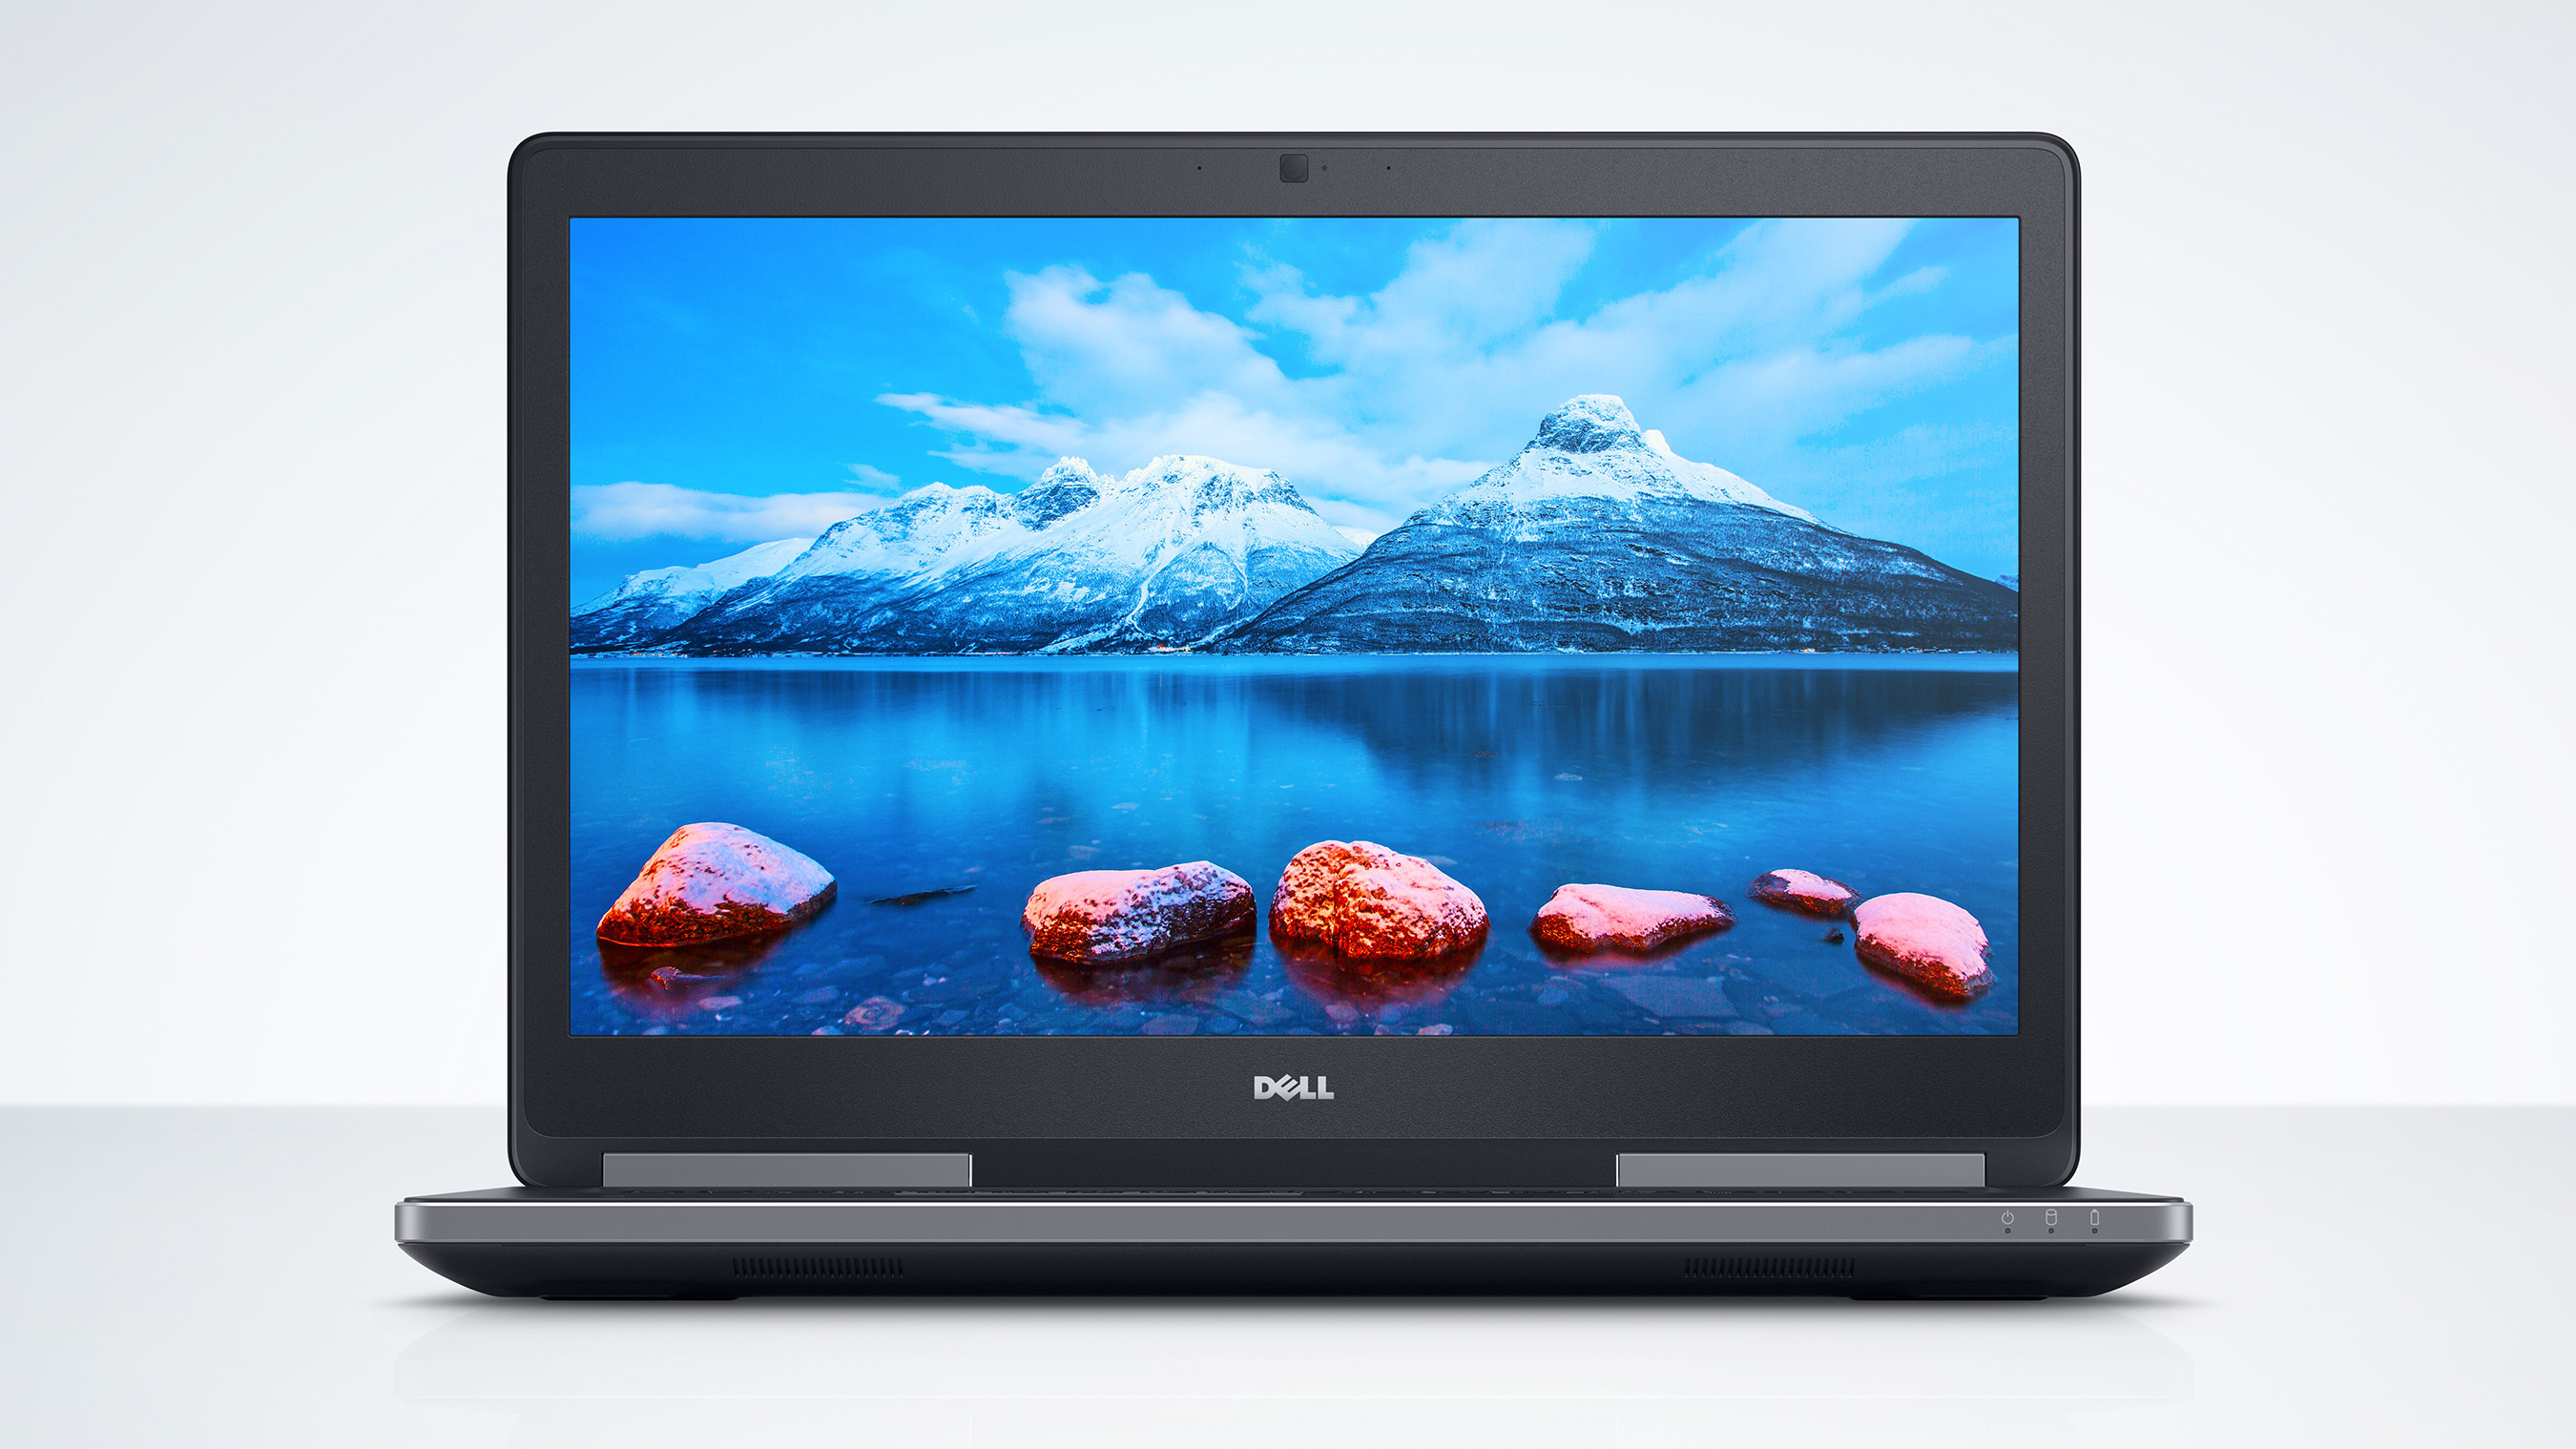 Dell's Innovative PCs Actively Engage the Senses with Stunning